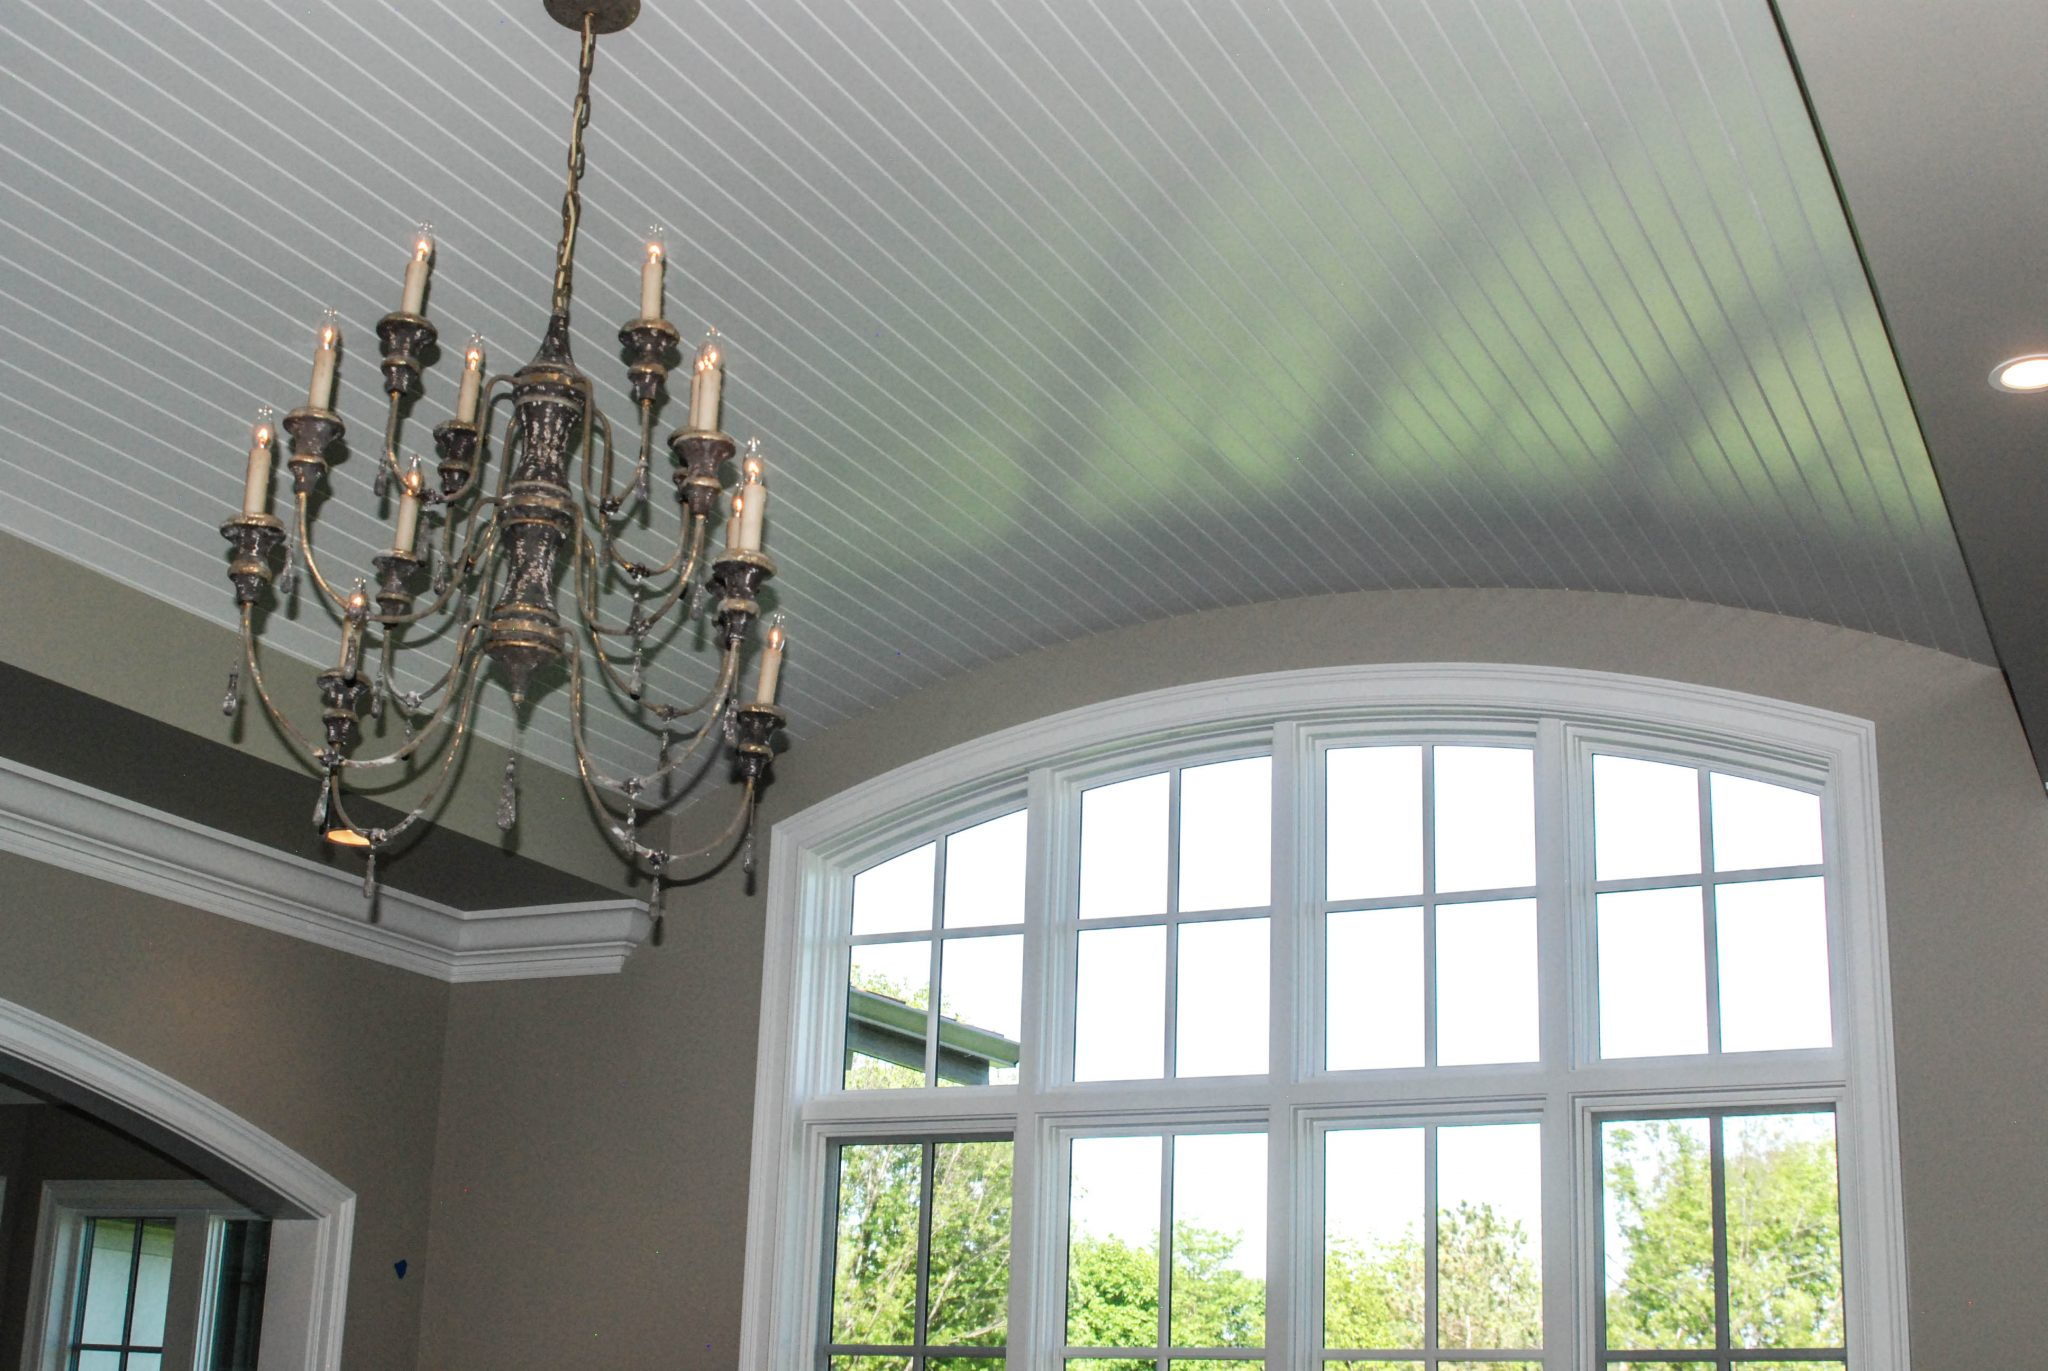 Michael Buss Architects Ceiling